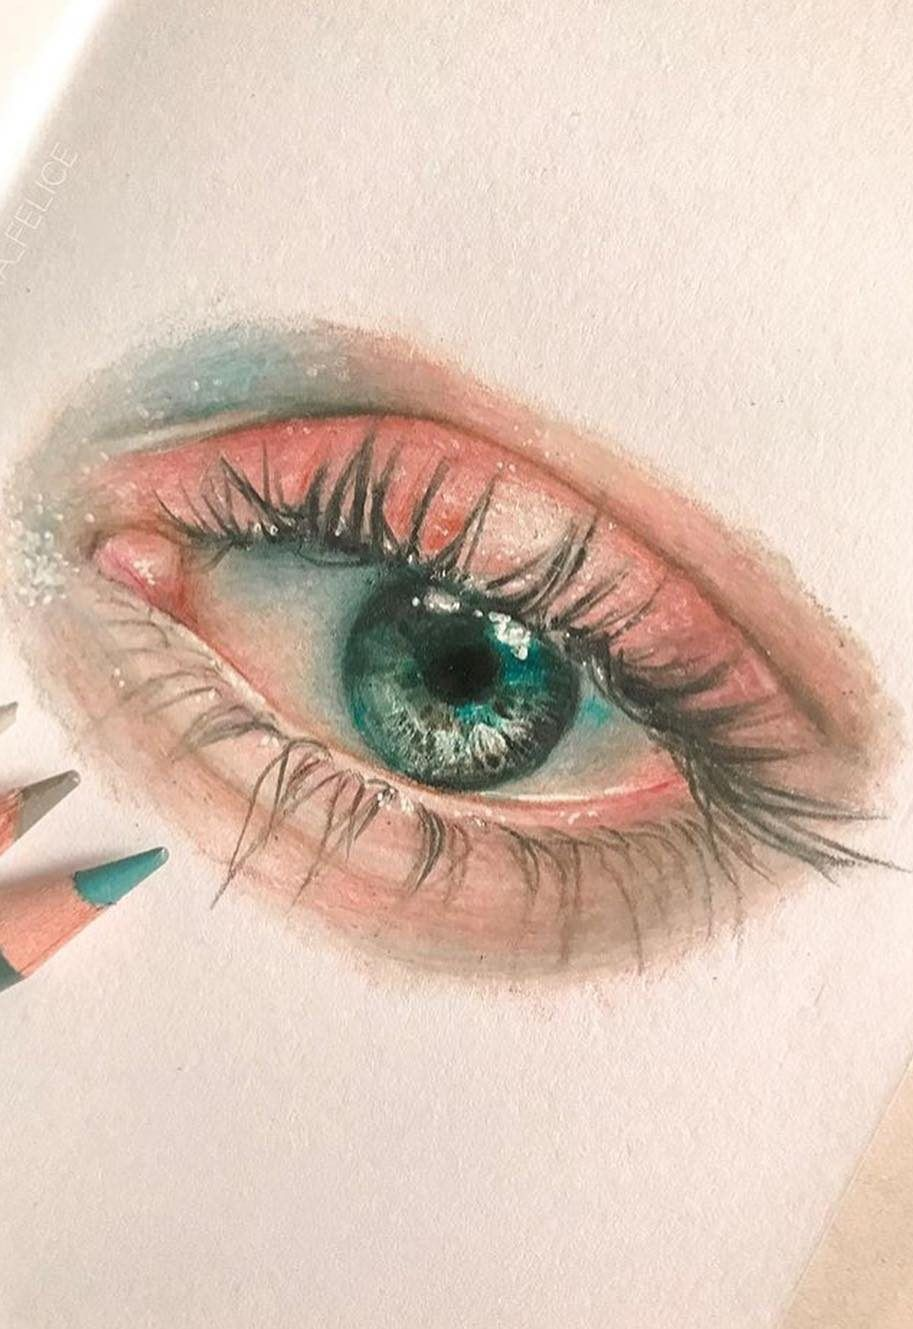 36 Awesome Eye Drawing Images ! How to draw a realistic eye! Part 18 #realisticeye